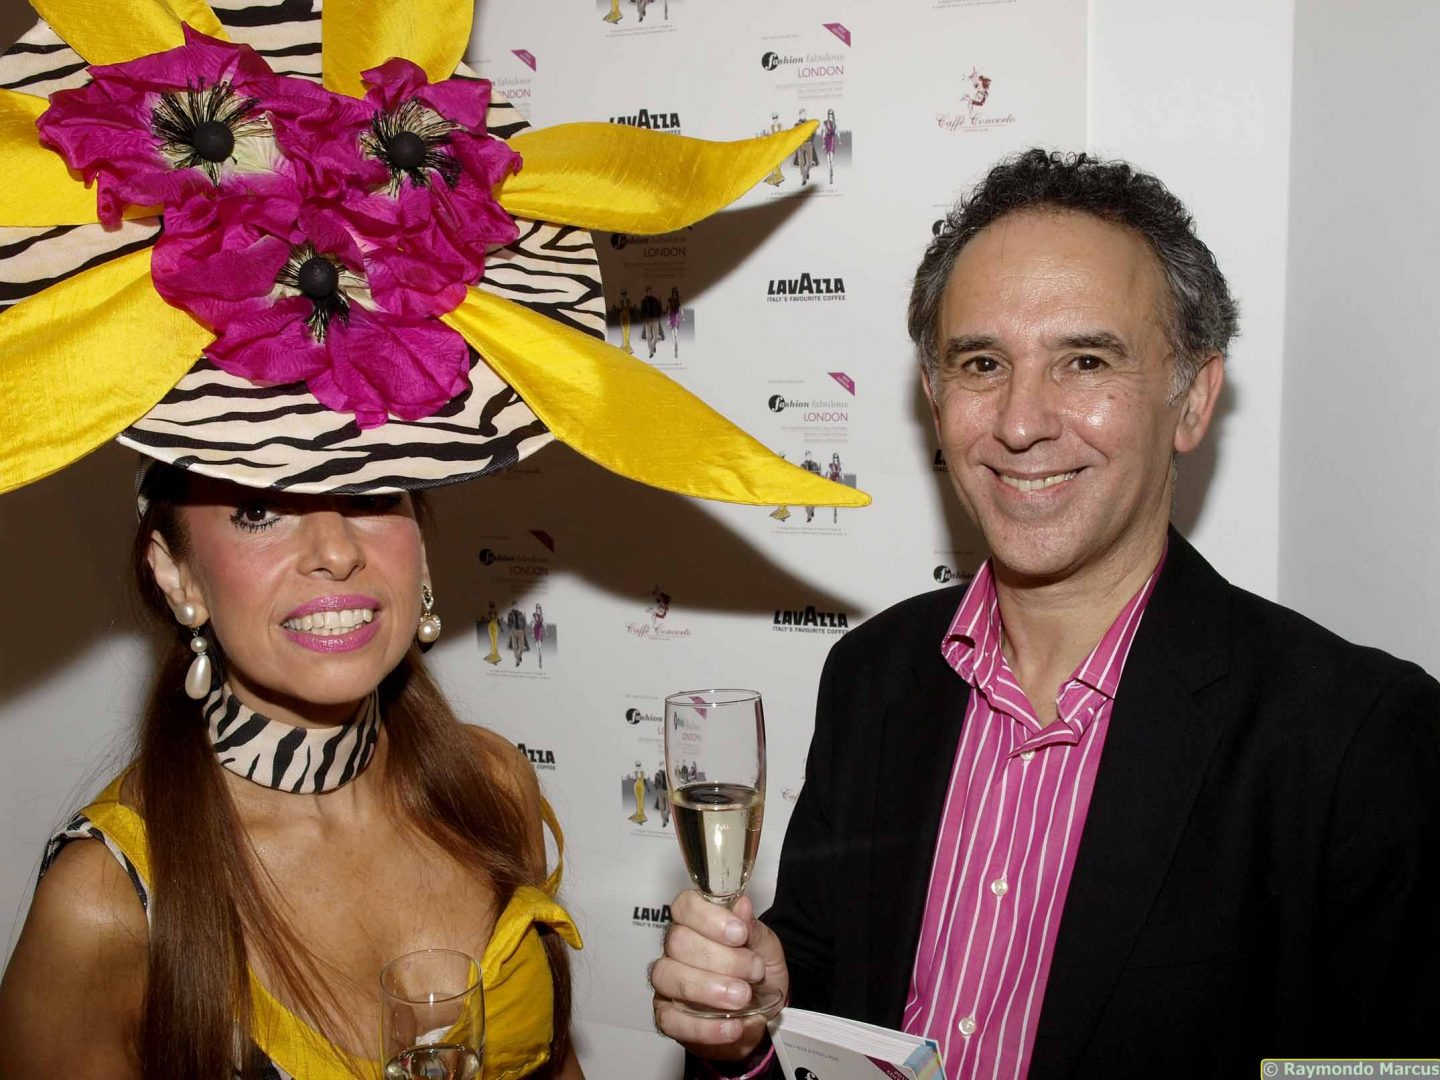 Hats off! A 30-years retrospective of inspirational millinery